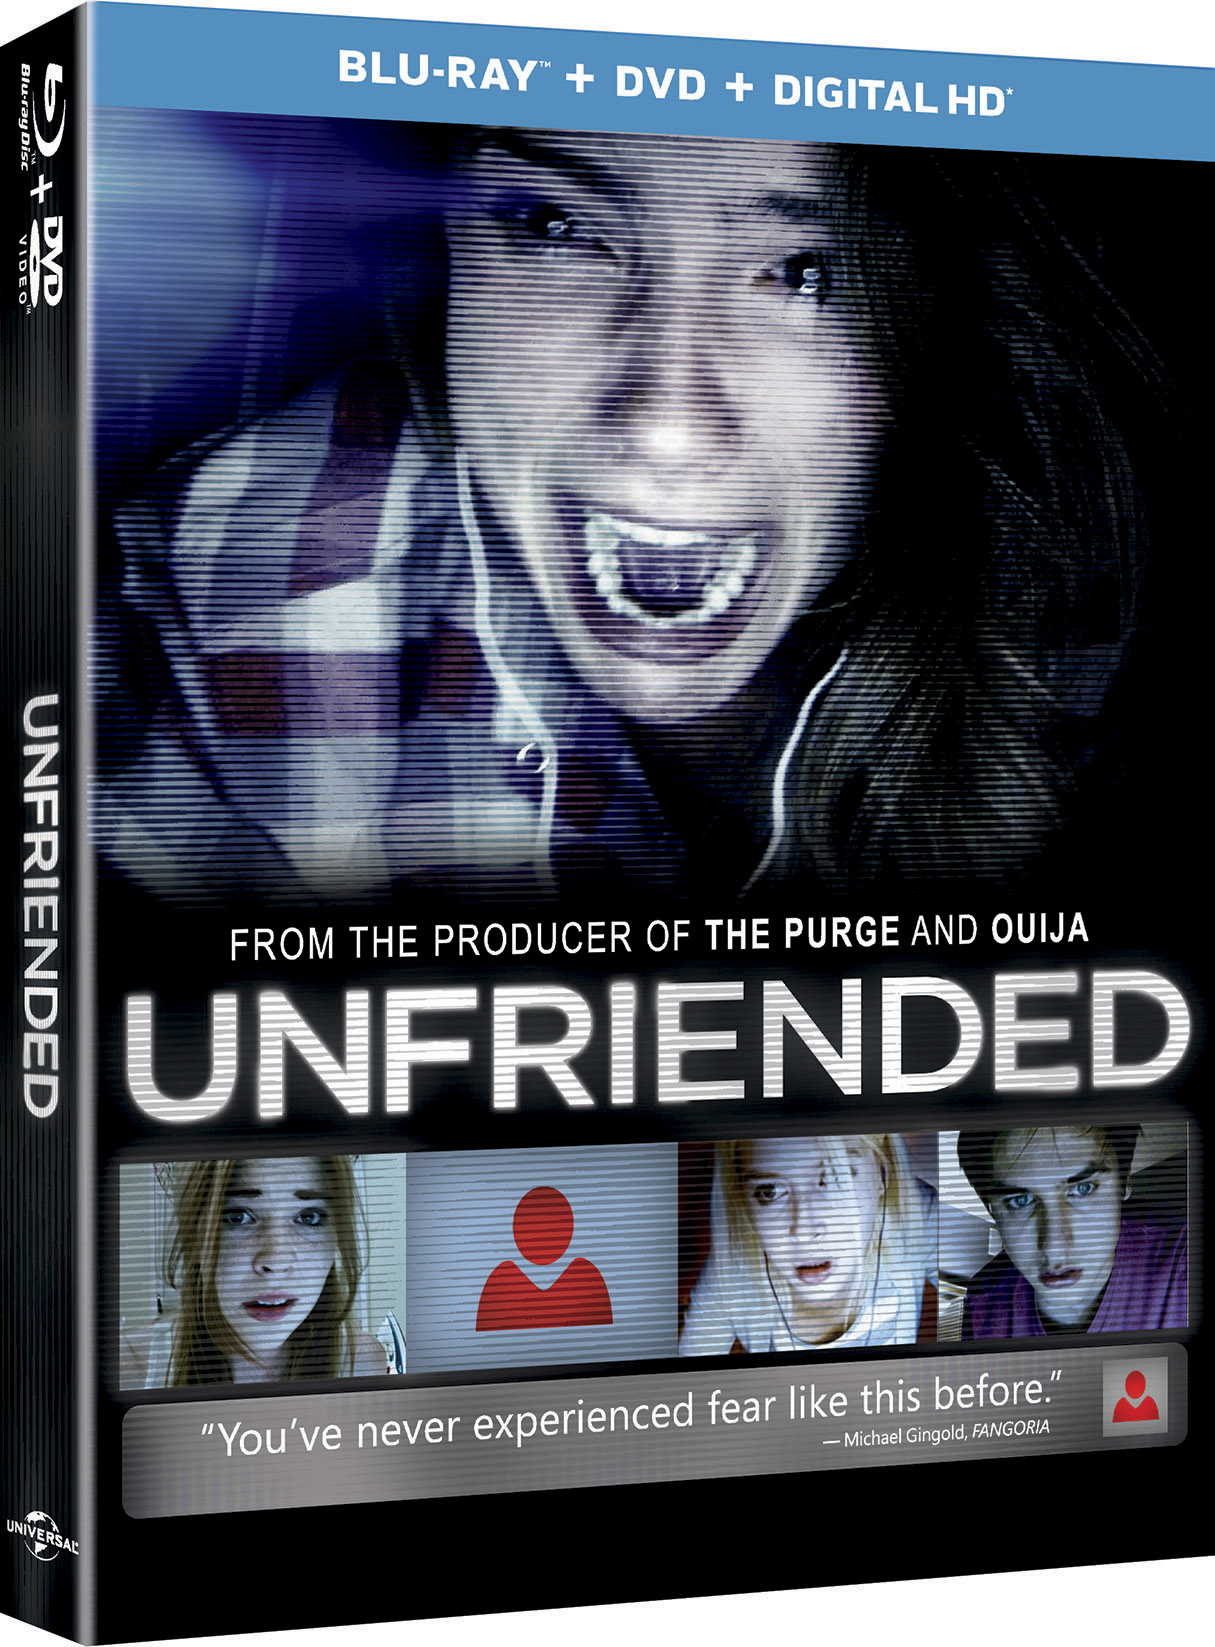 Unfriended Blu-ray Review